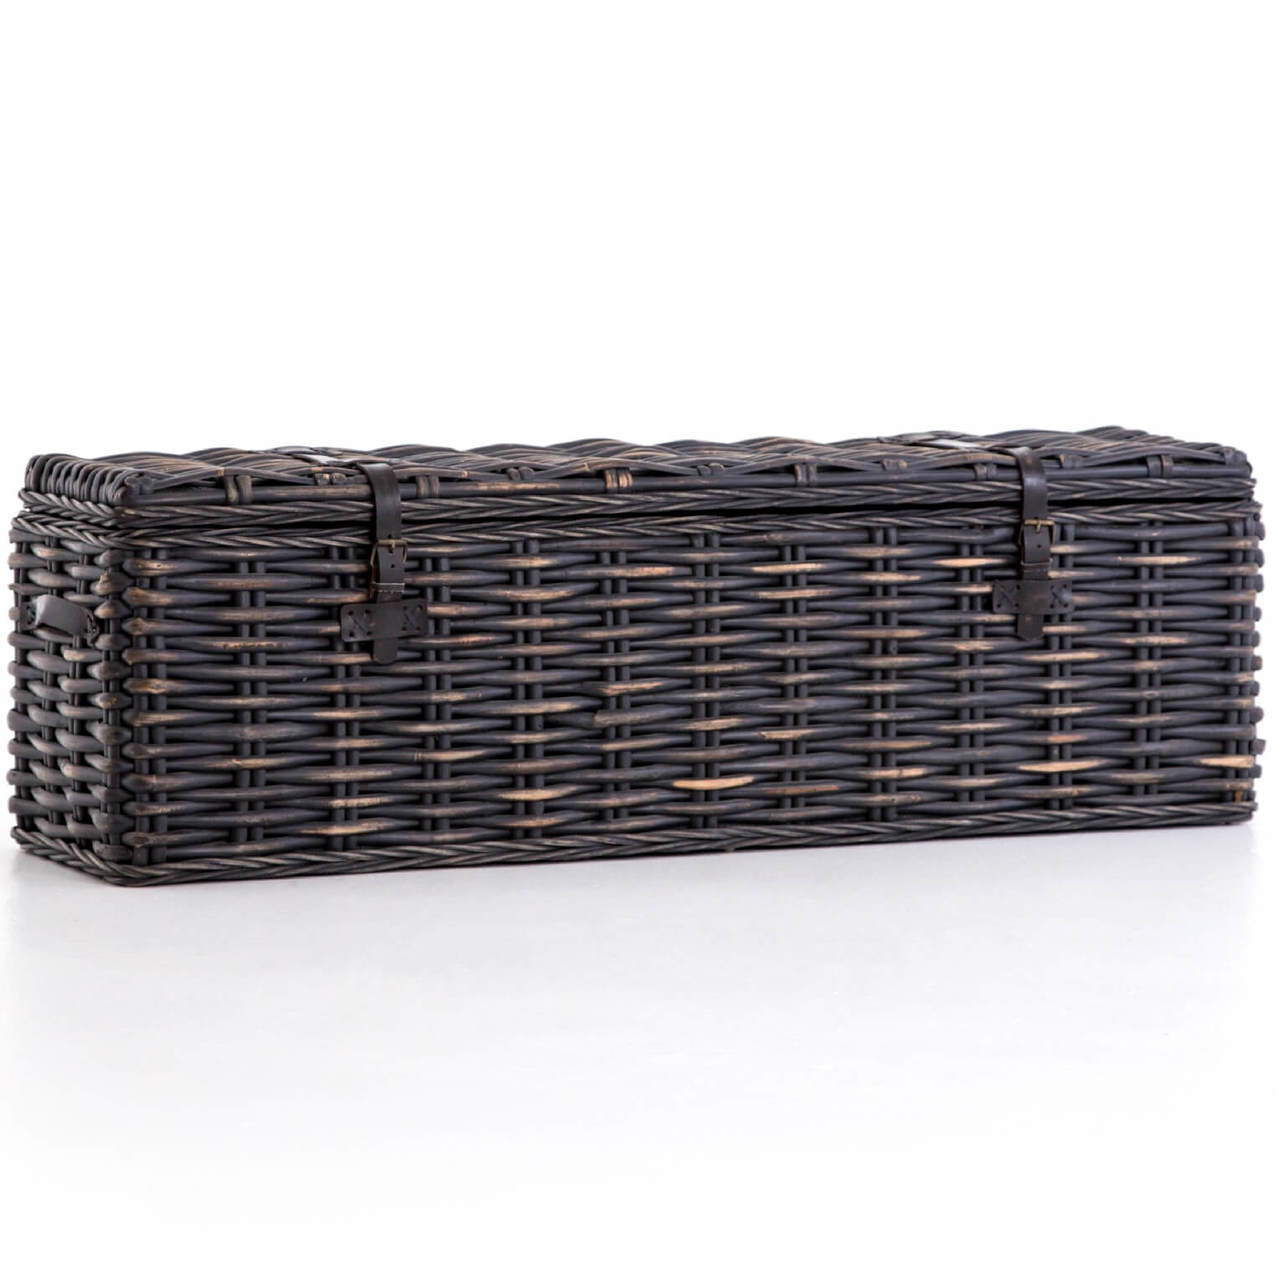 Coastal Black Wash Woven Wicker Storage Trunk